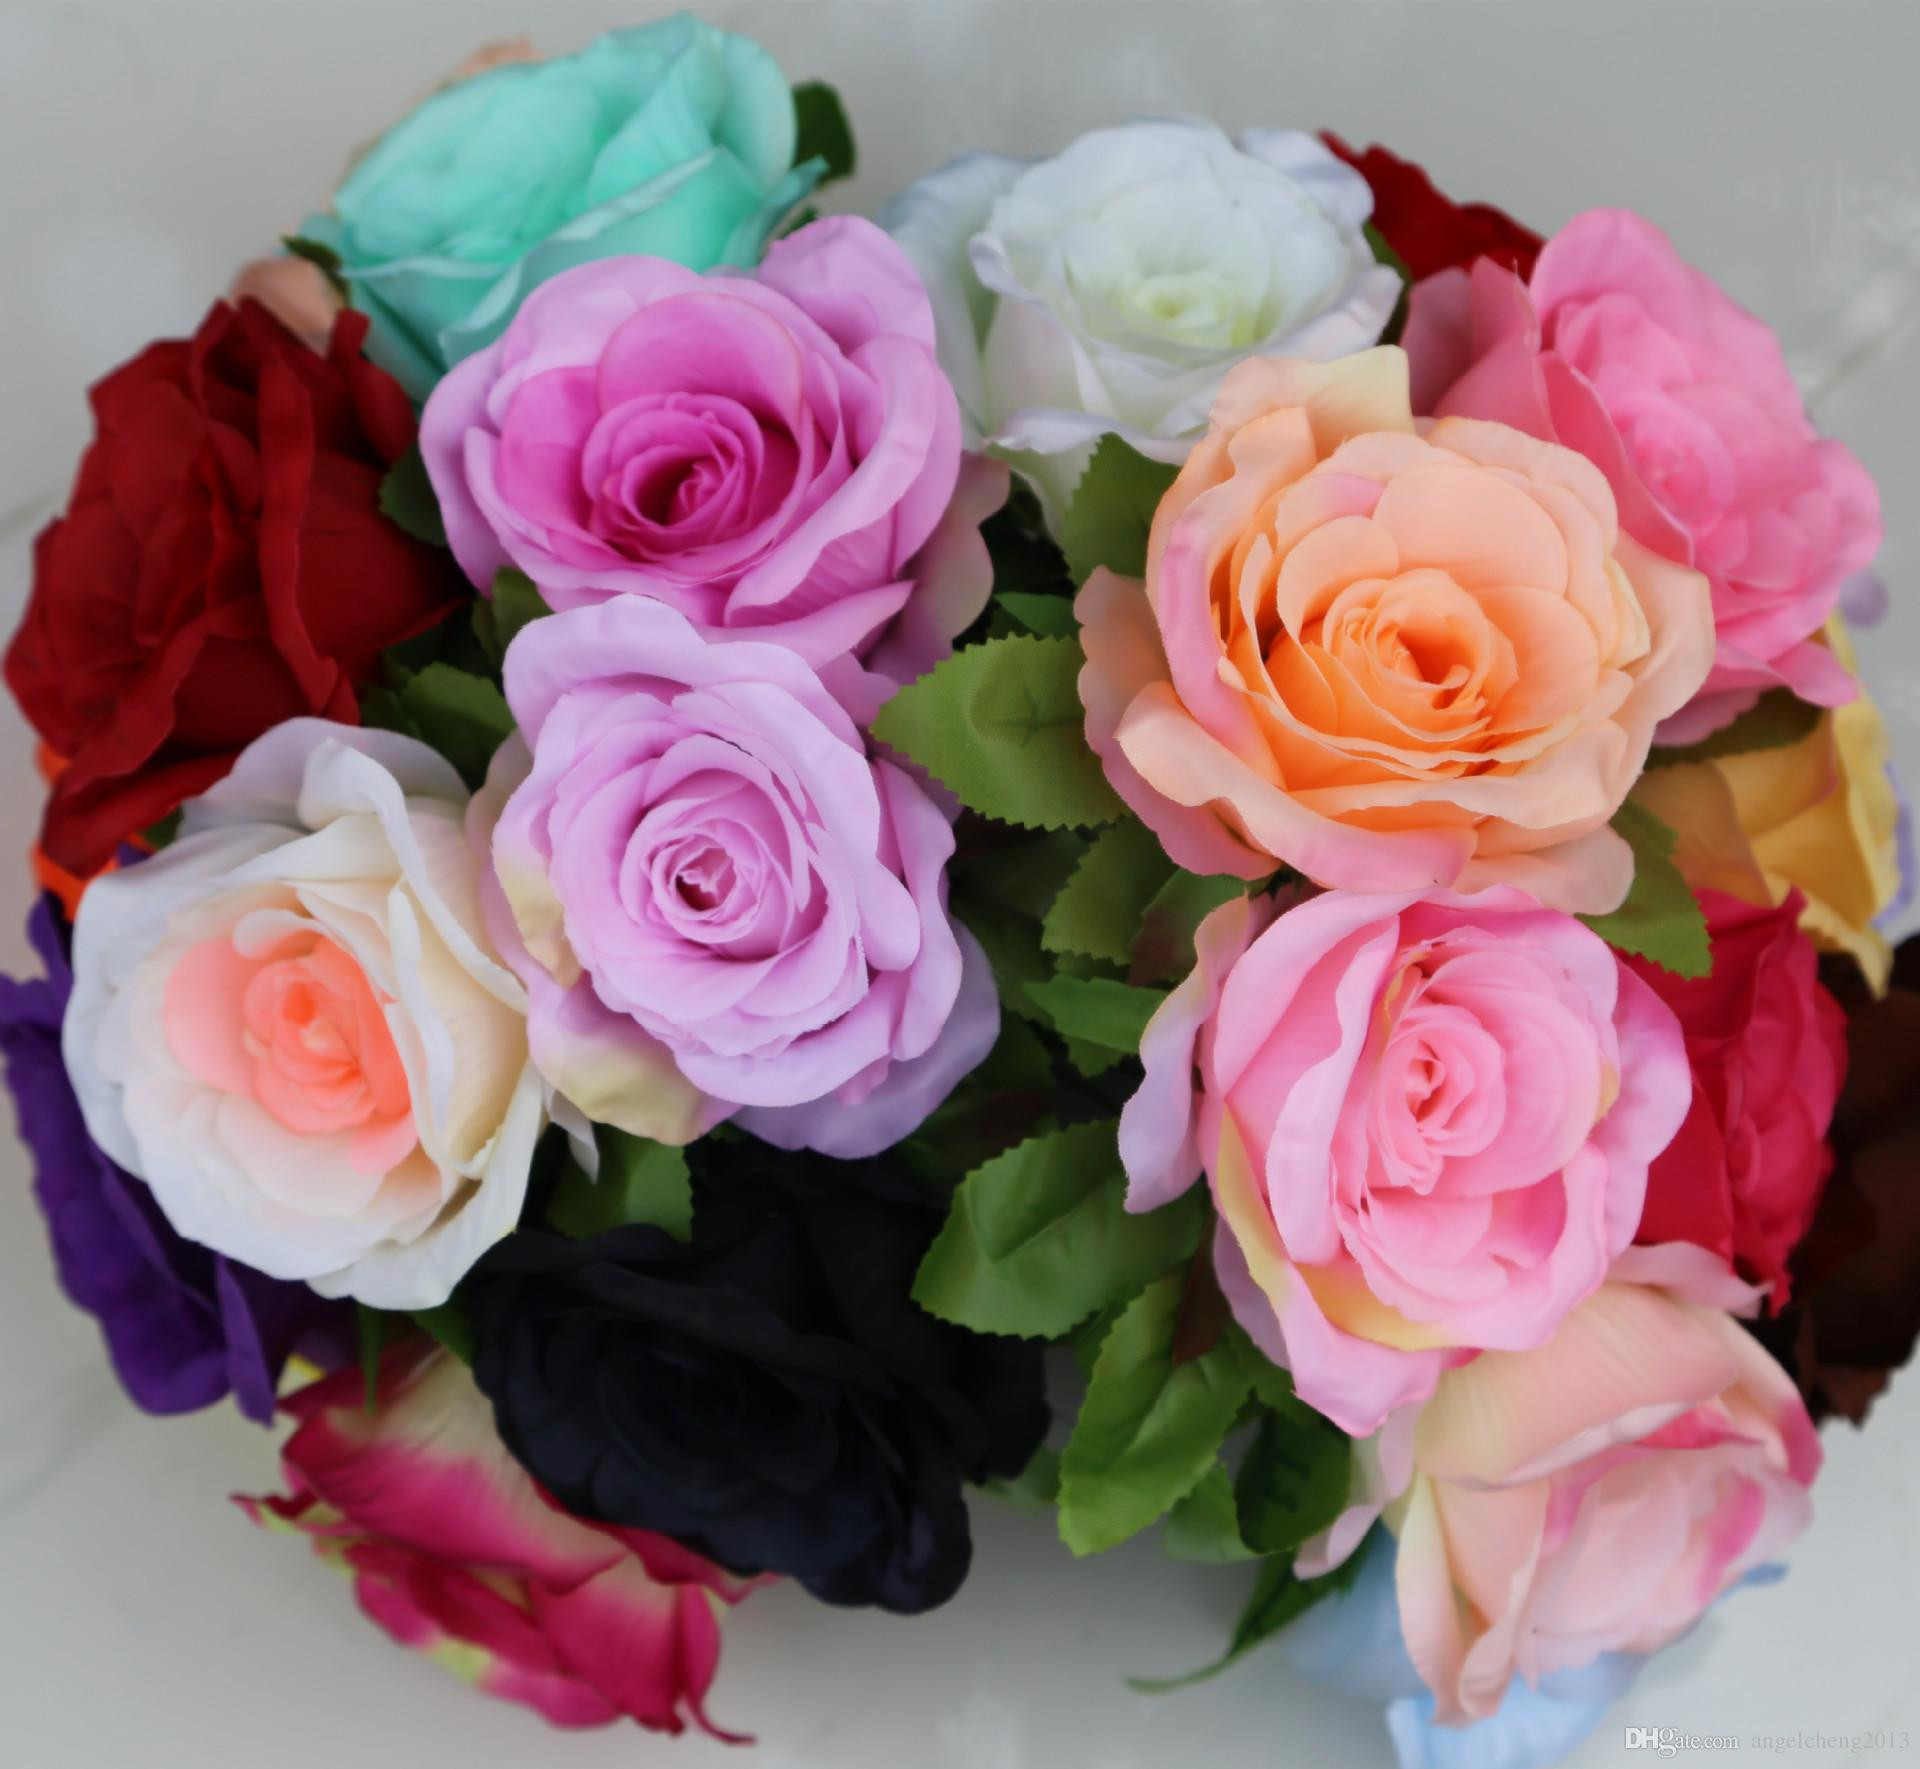 Flowers Online Uae Beautiful Artificial Flowers Silk Roses Bouquet Home Wedding Decoration Pack